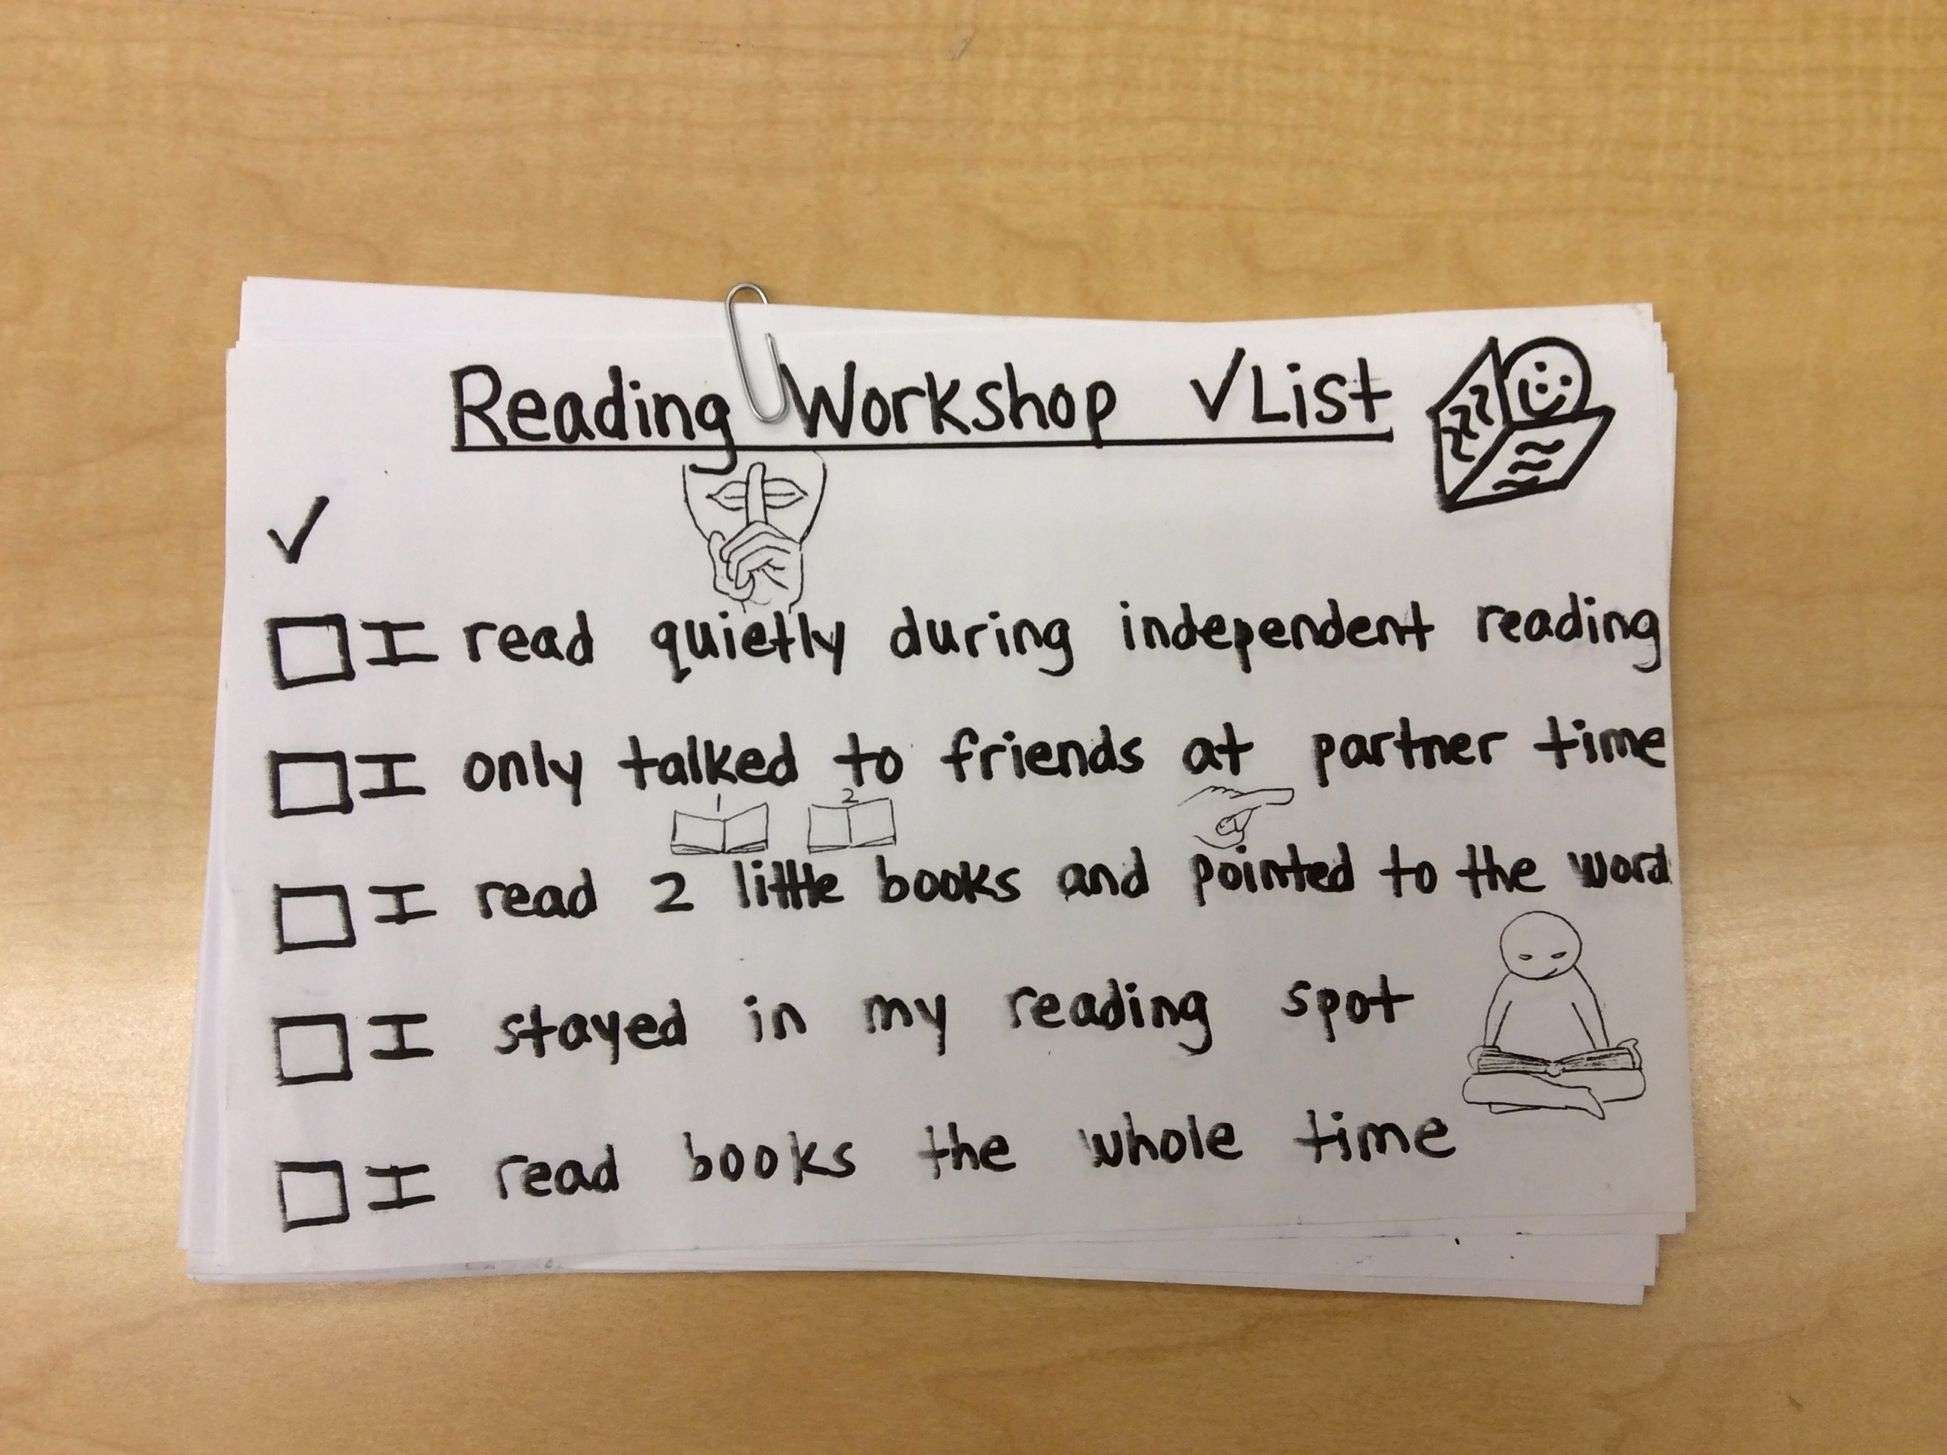 Self Monitoring Reading Checklist For Lower Elementary Grade Students Meshnick Amp Arest Ps 75